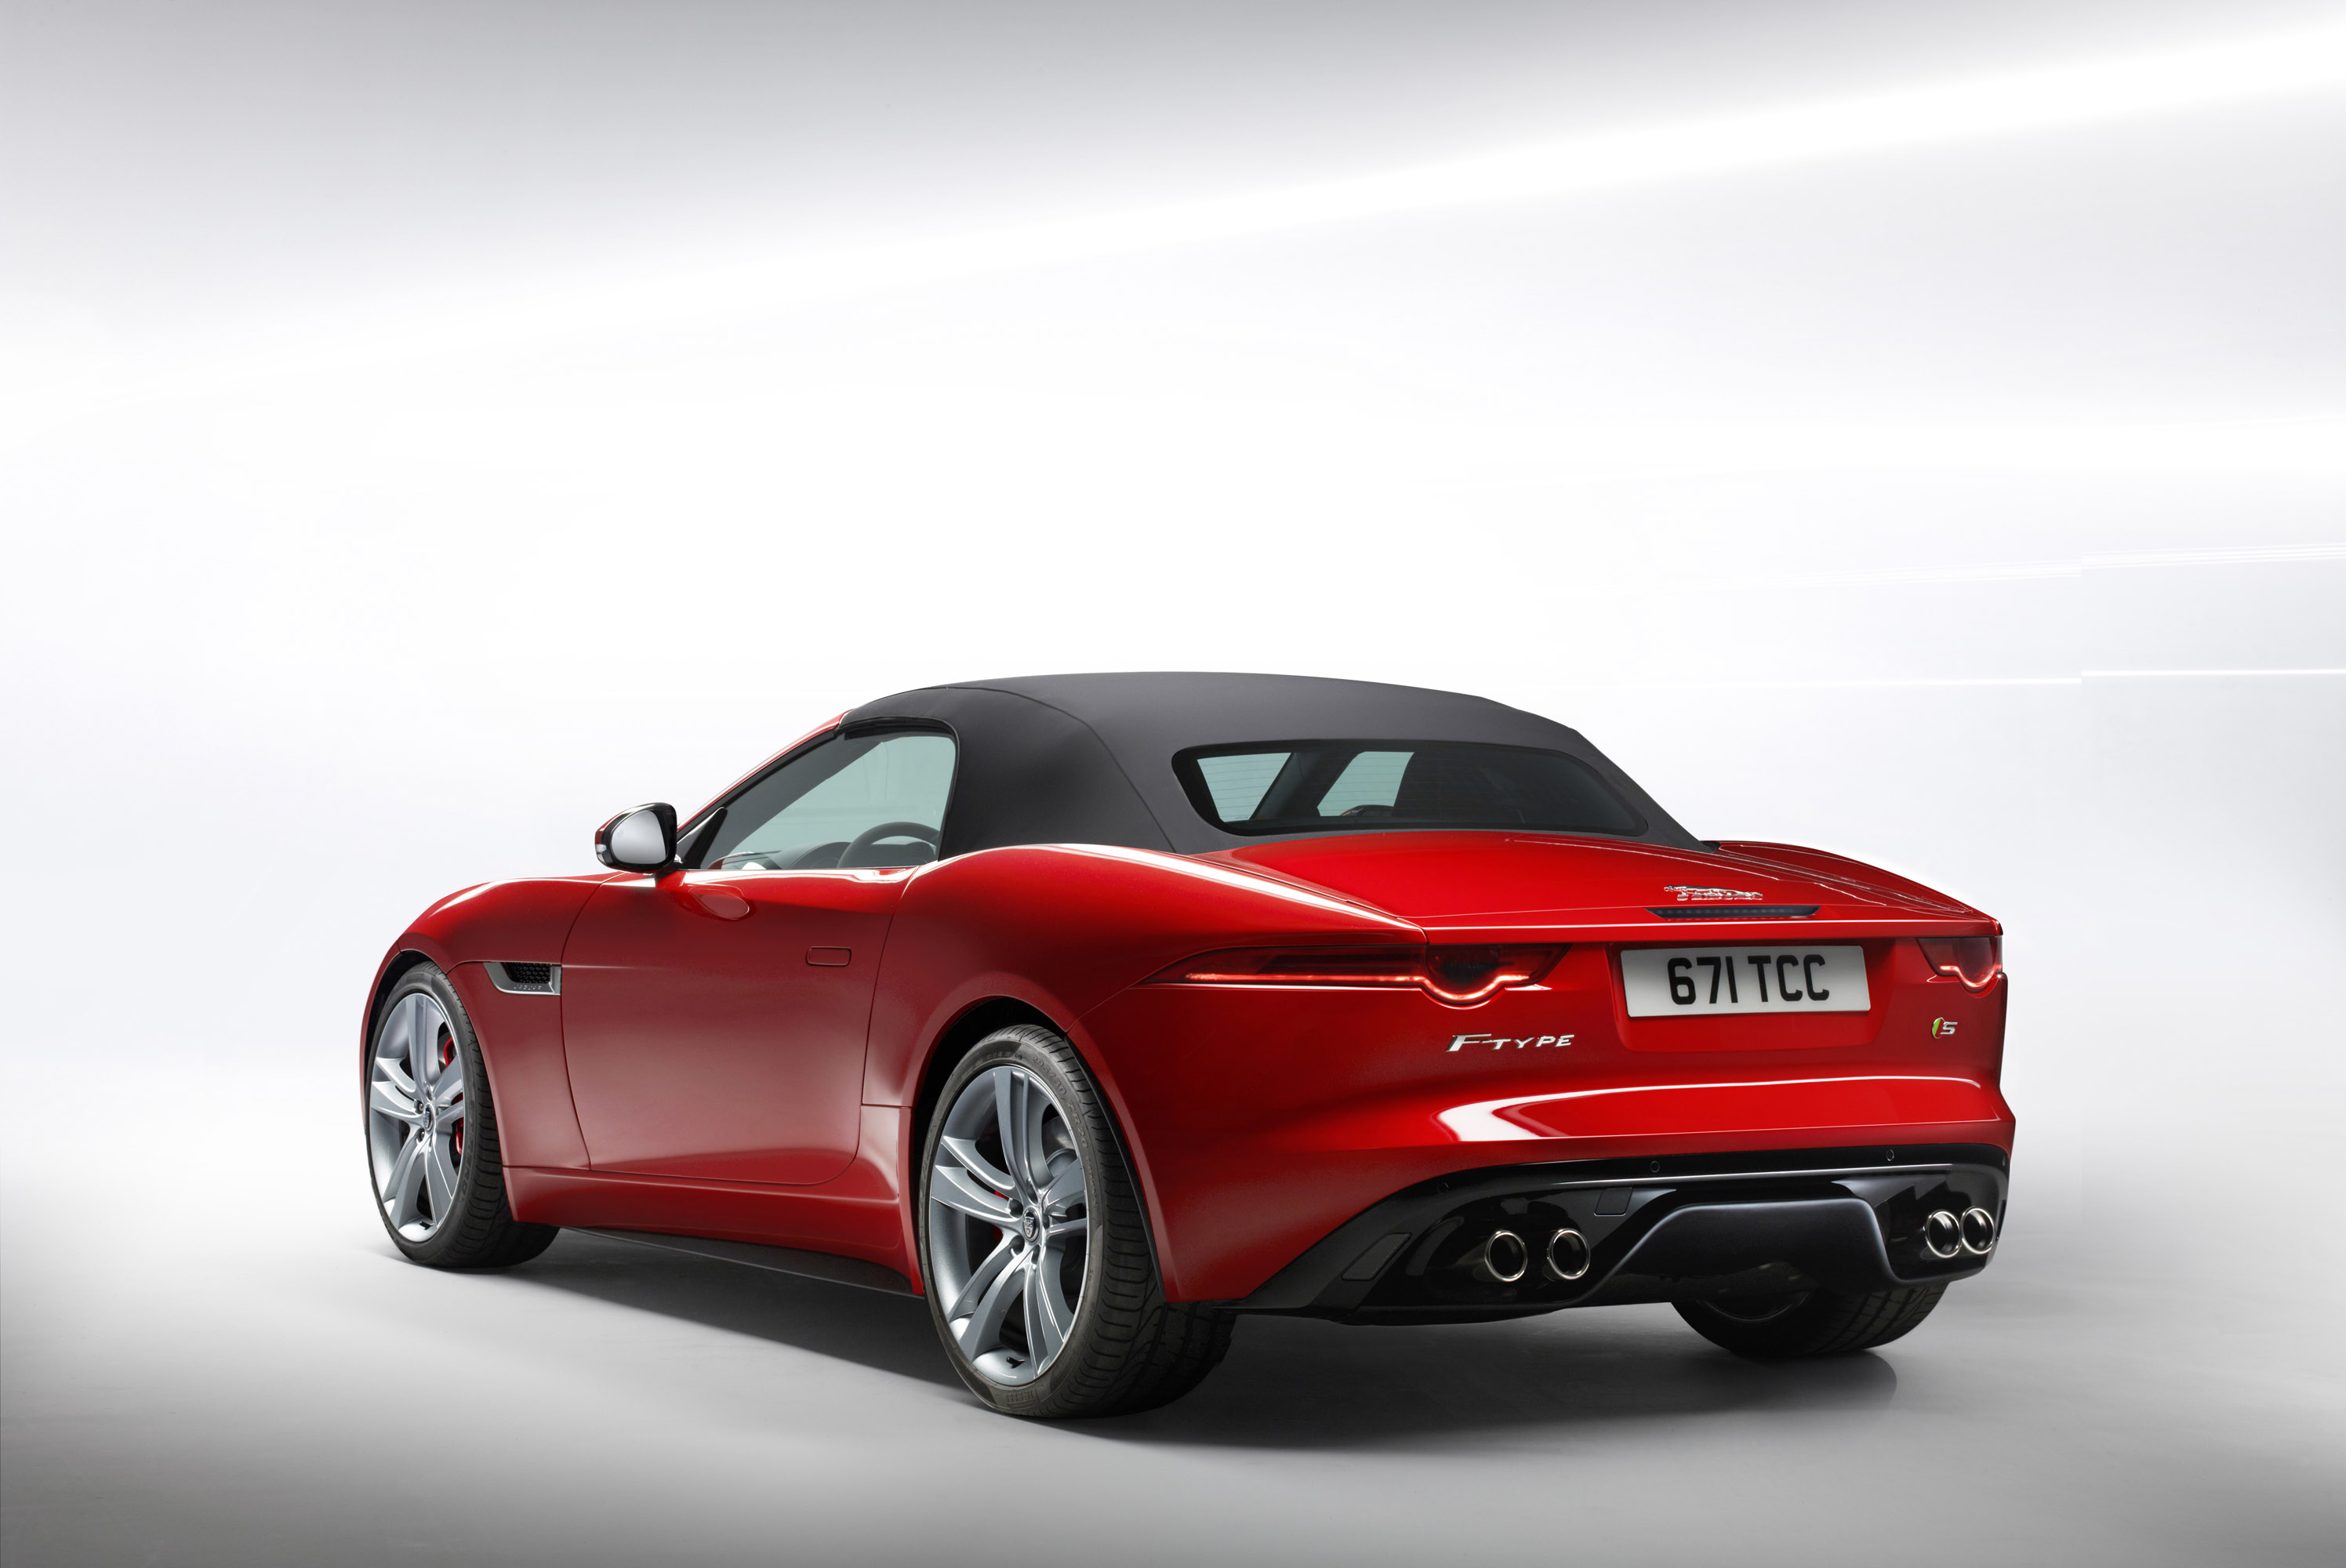 launch of jaguar four confirmed cylinder australian images type price loading f photos revealed